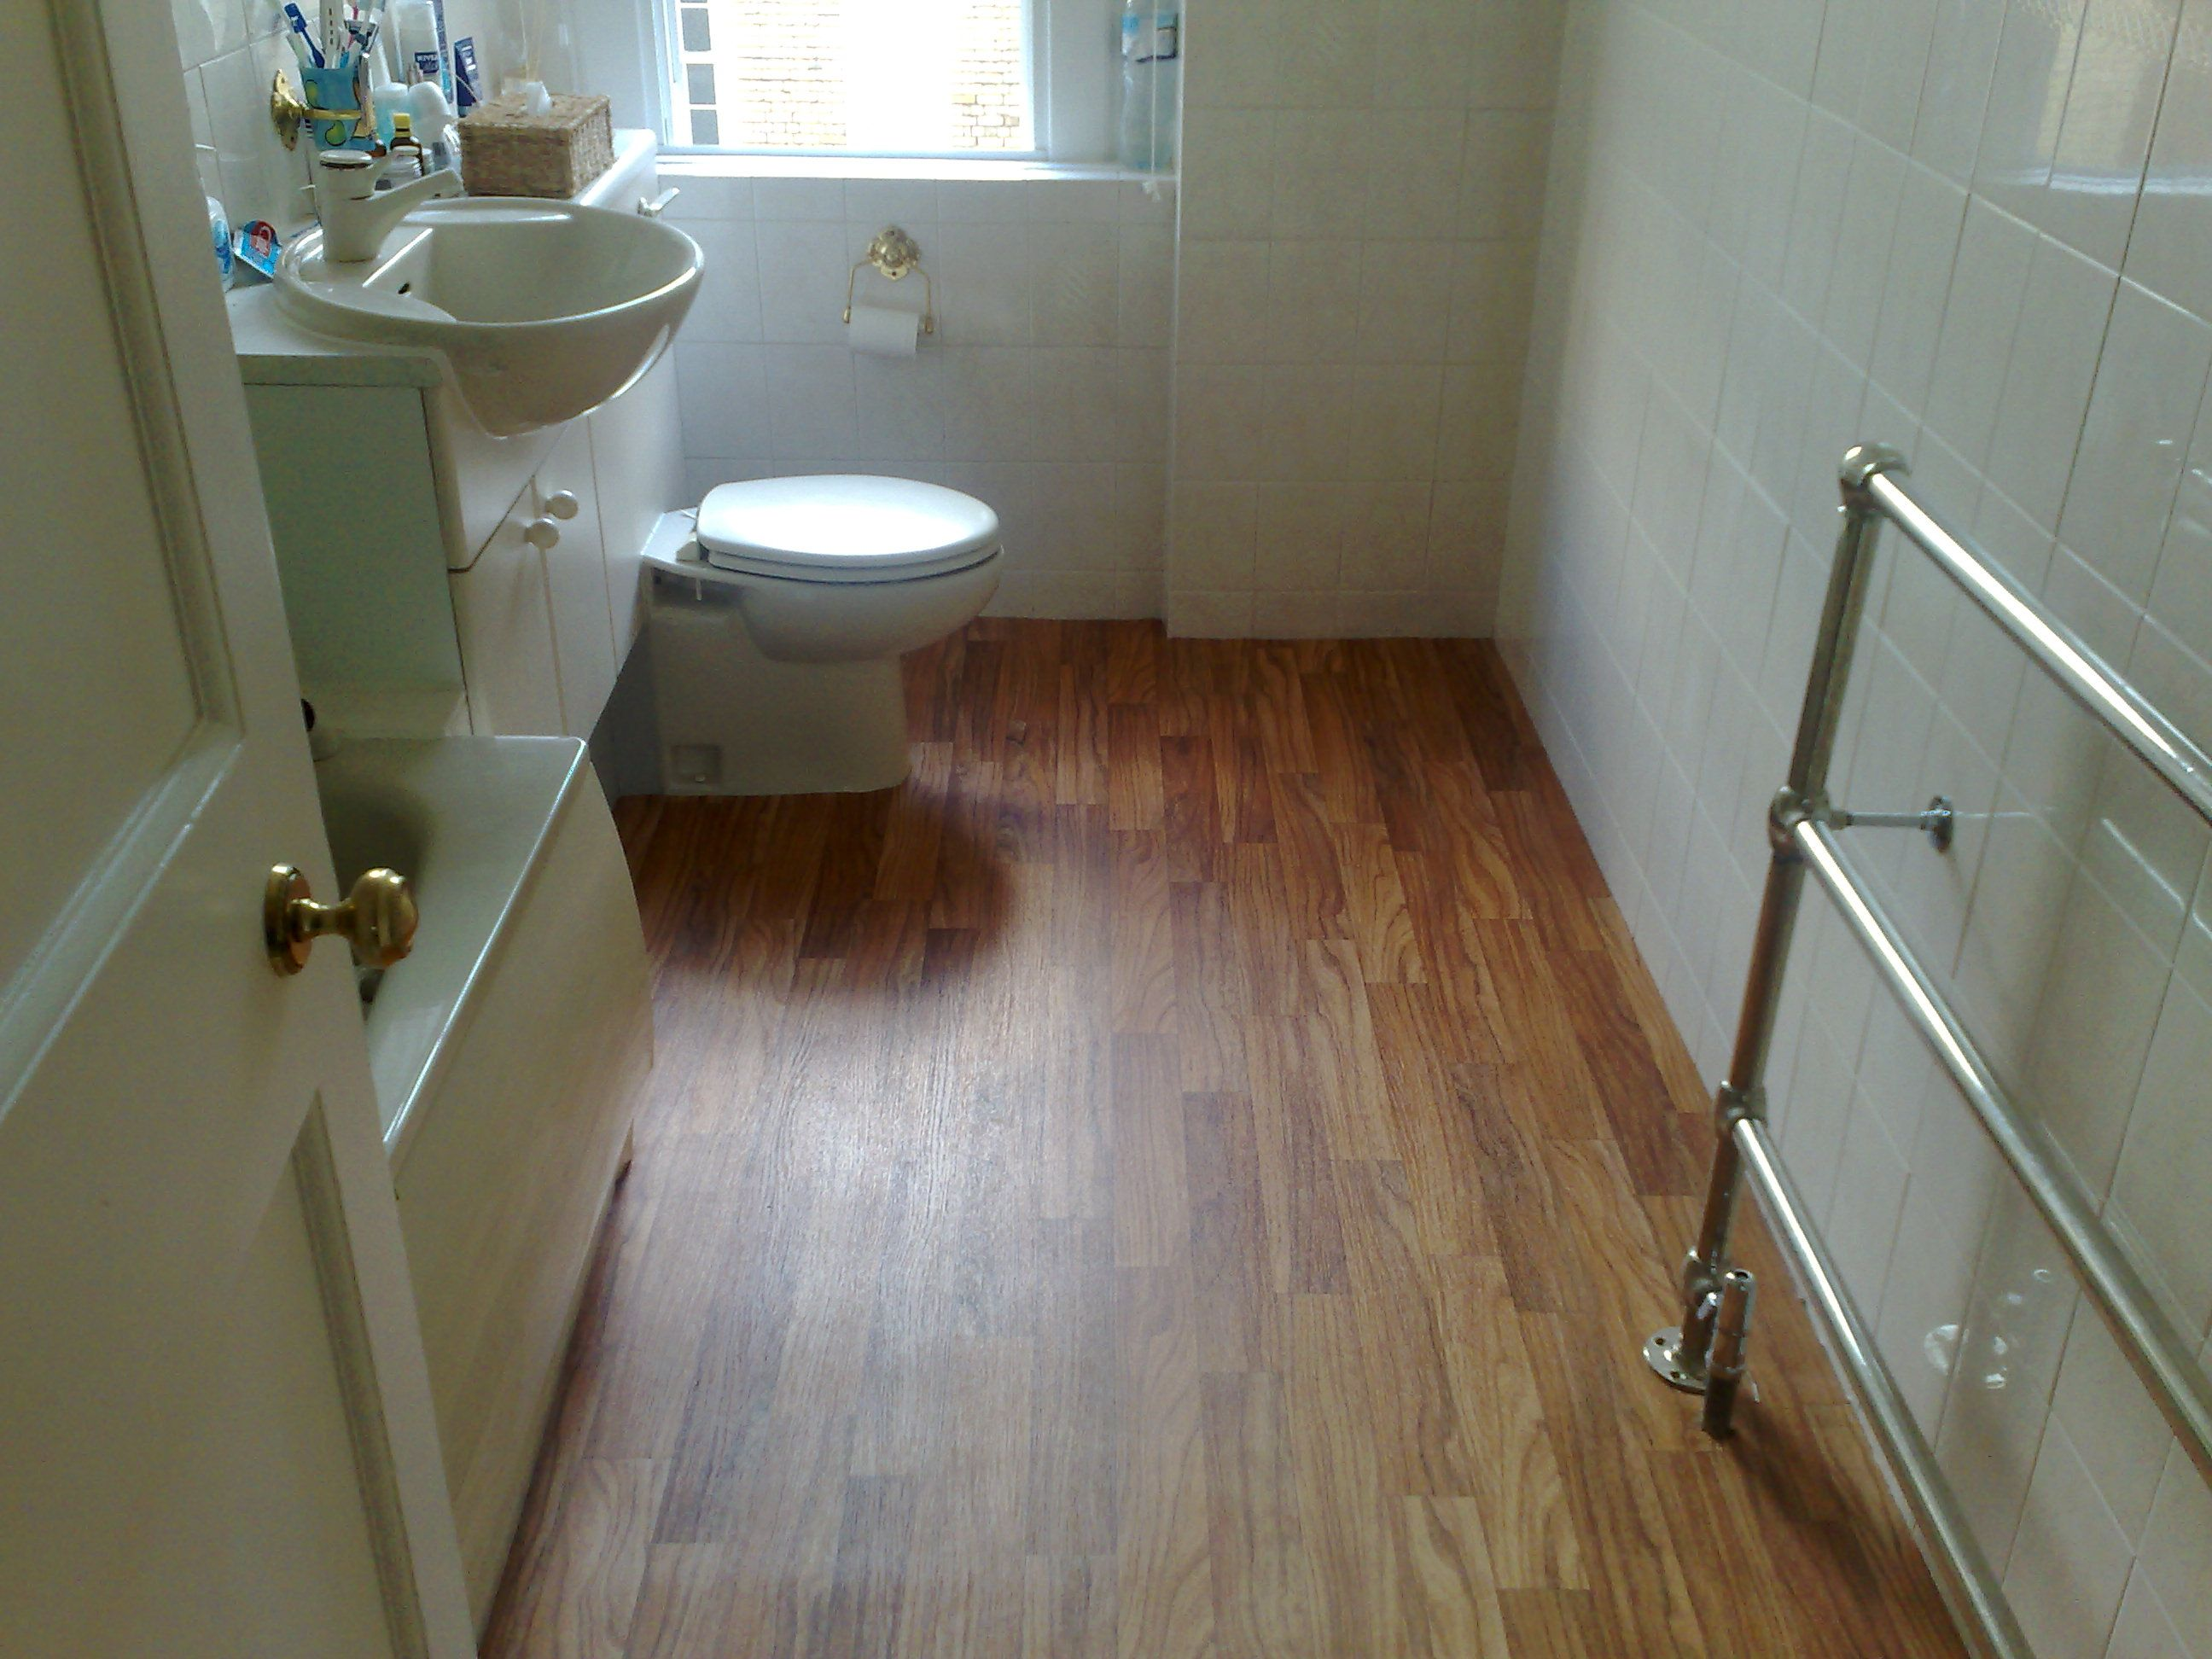 Bathroom Floor Tile | BATHROOM WOODEN FLOORING » Bathroom Design ...